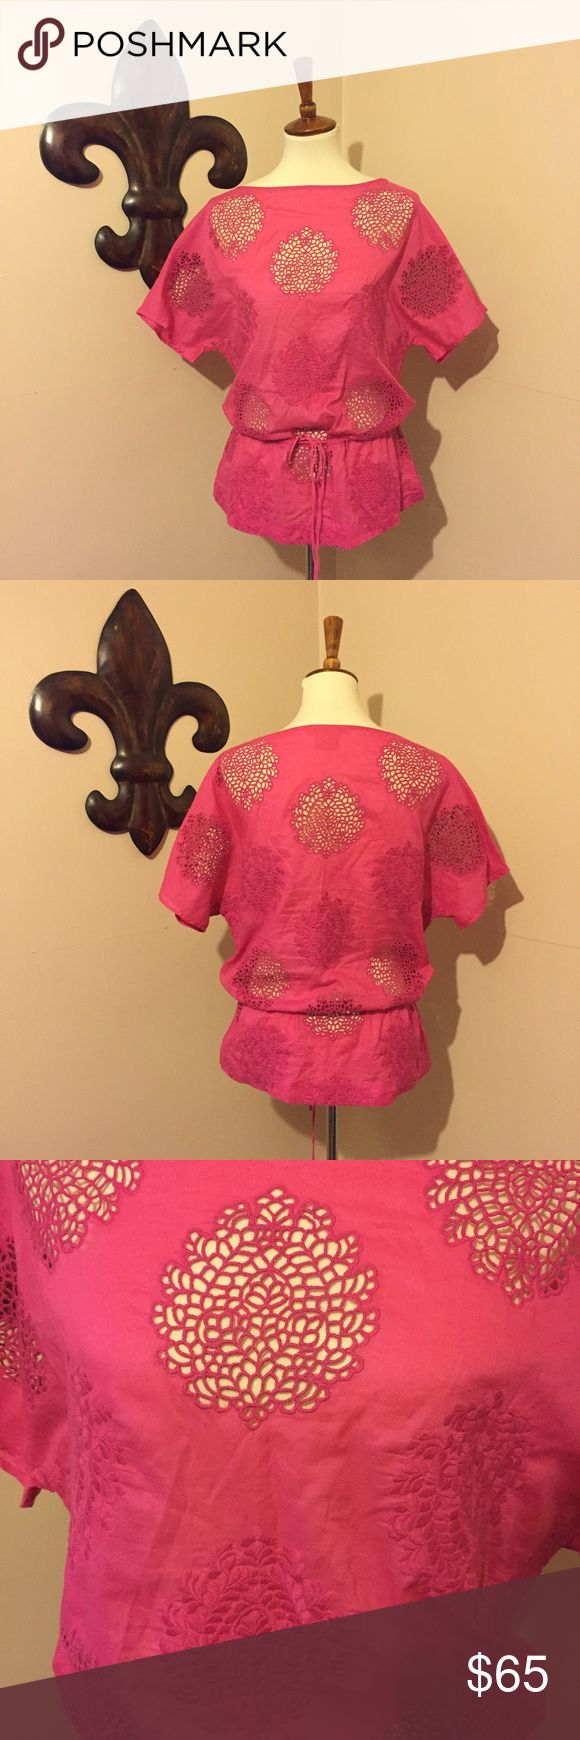 Tory Burch Hot Pink Top Perfect for layering or over a bikini top! Drawstring waist. Tory Burch Tops